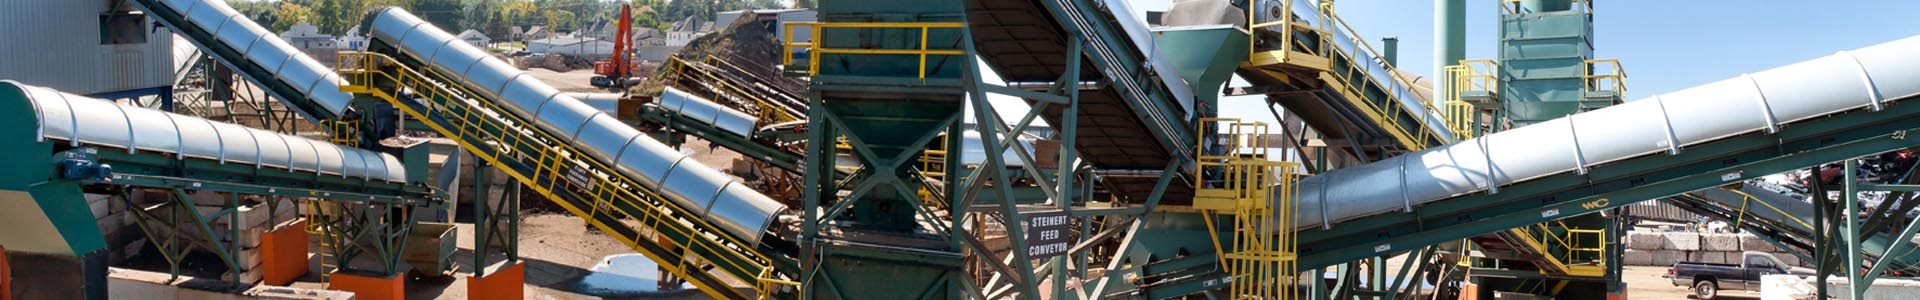 Separator Conveyors & Transport Conveyors